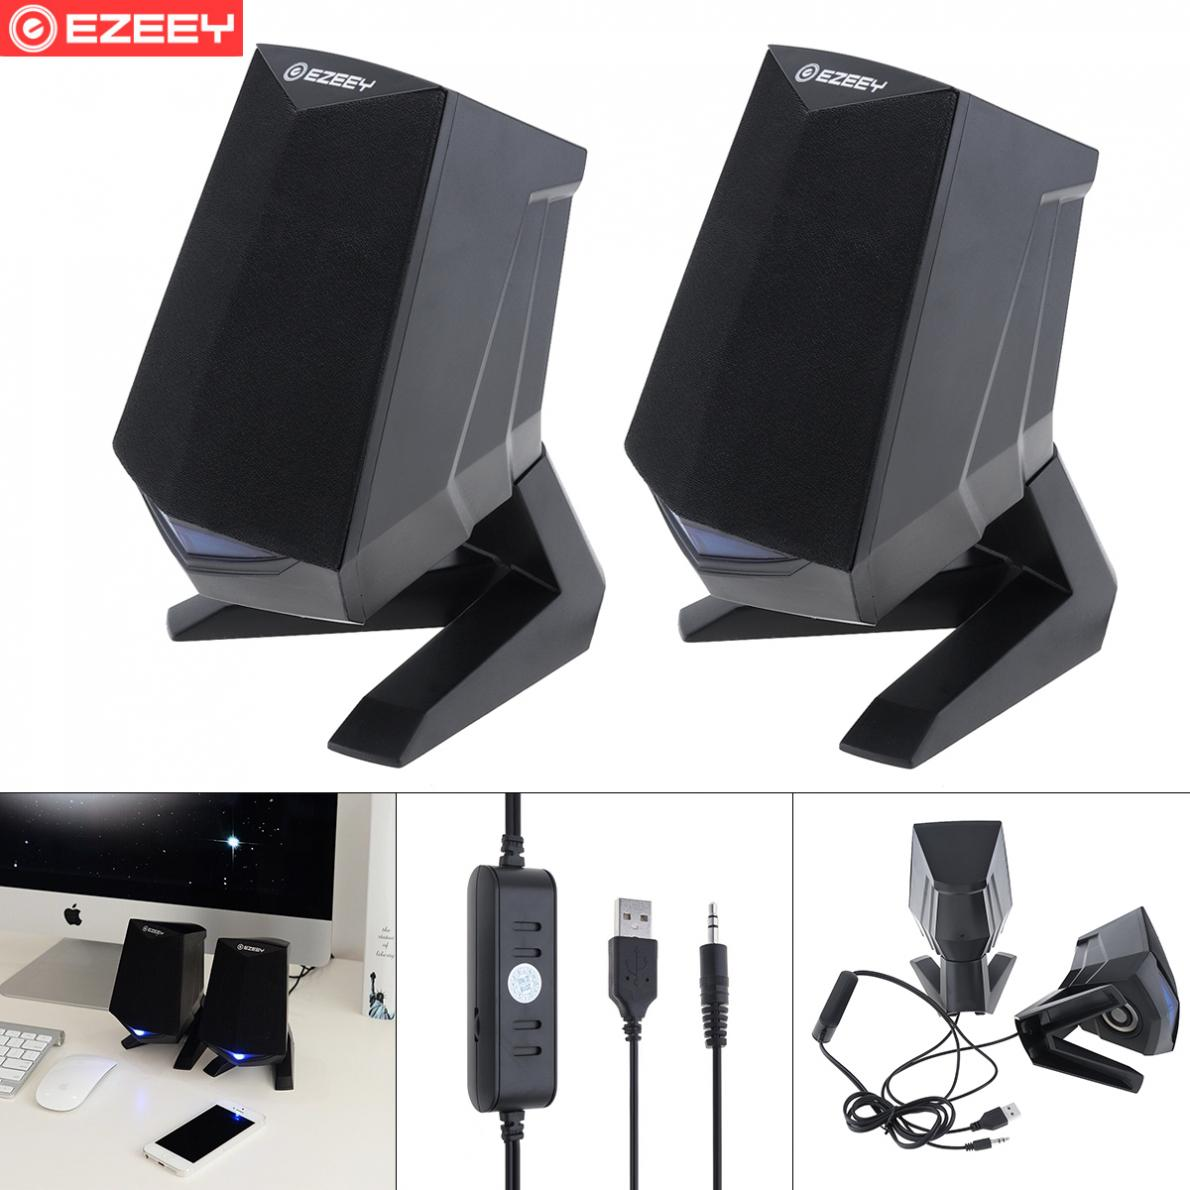 Wooden Full Range 3D Stereo Subwoofer PC Speaker Portable bass Music DJ USB Computer Speakers For laptop Phone TV